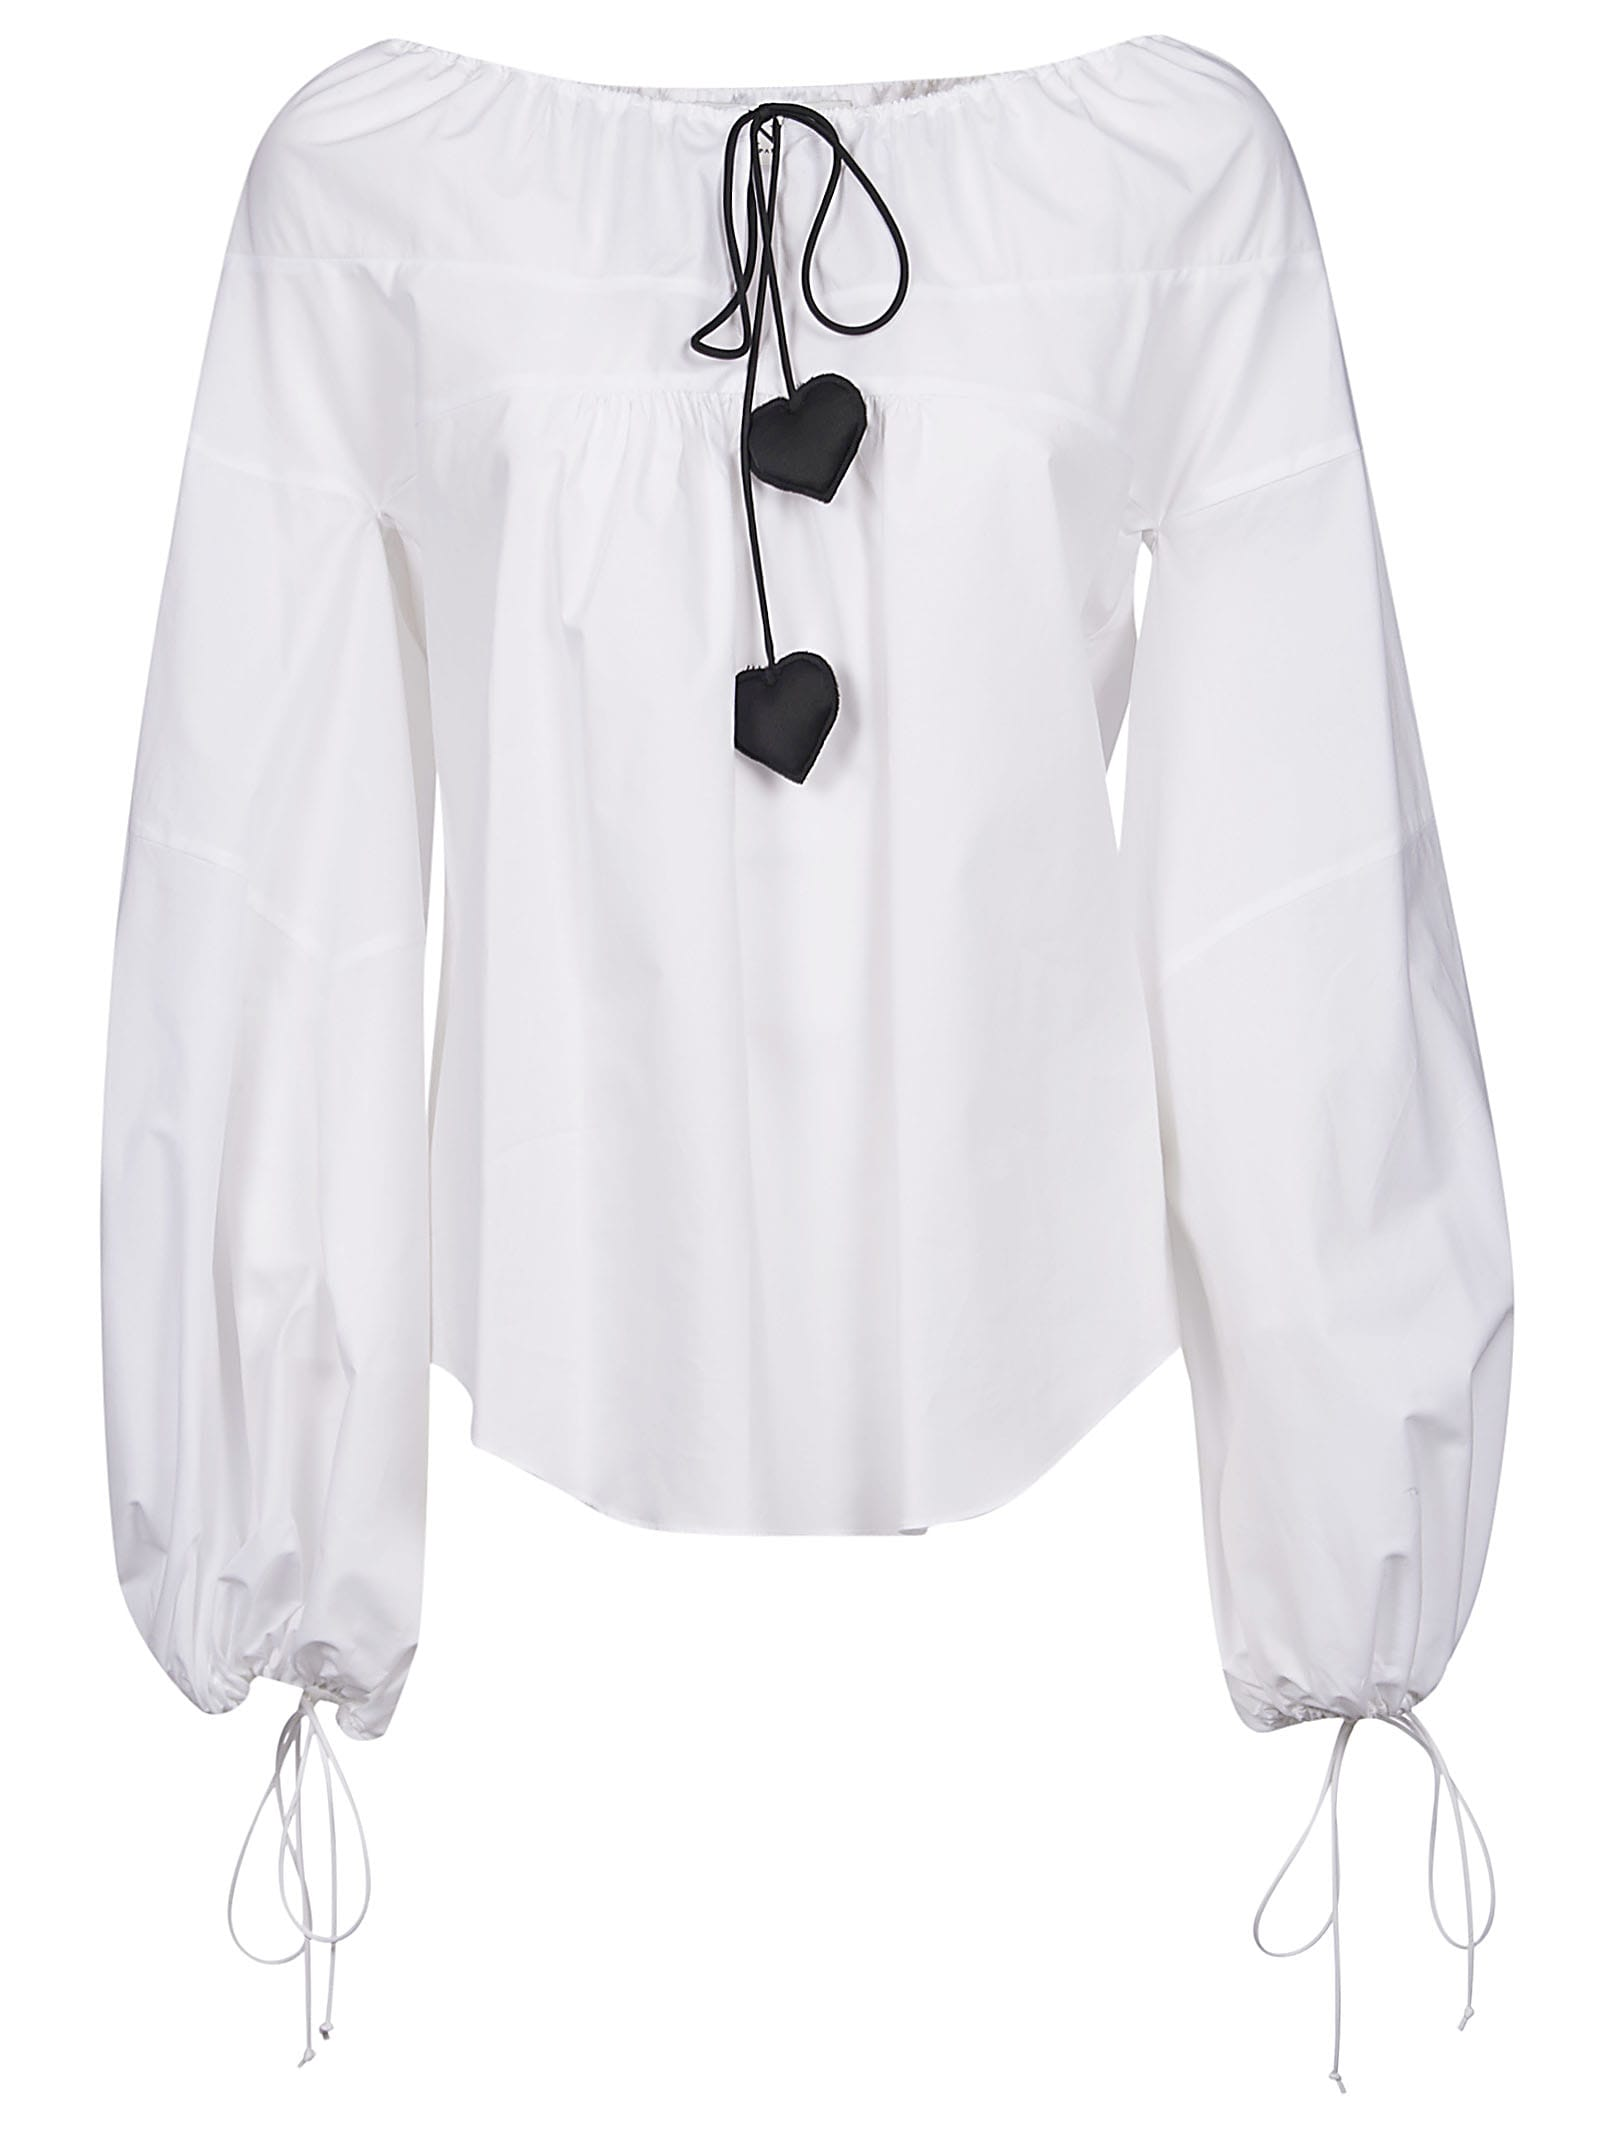 Lanvin Balloon-sleeved Blouse